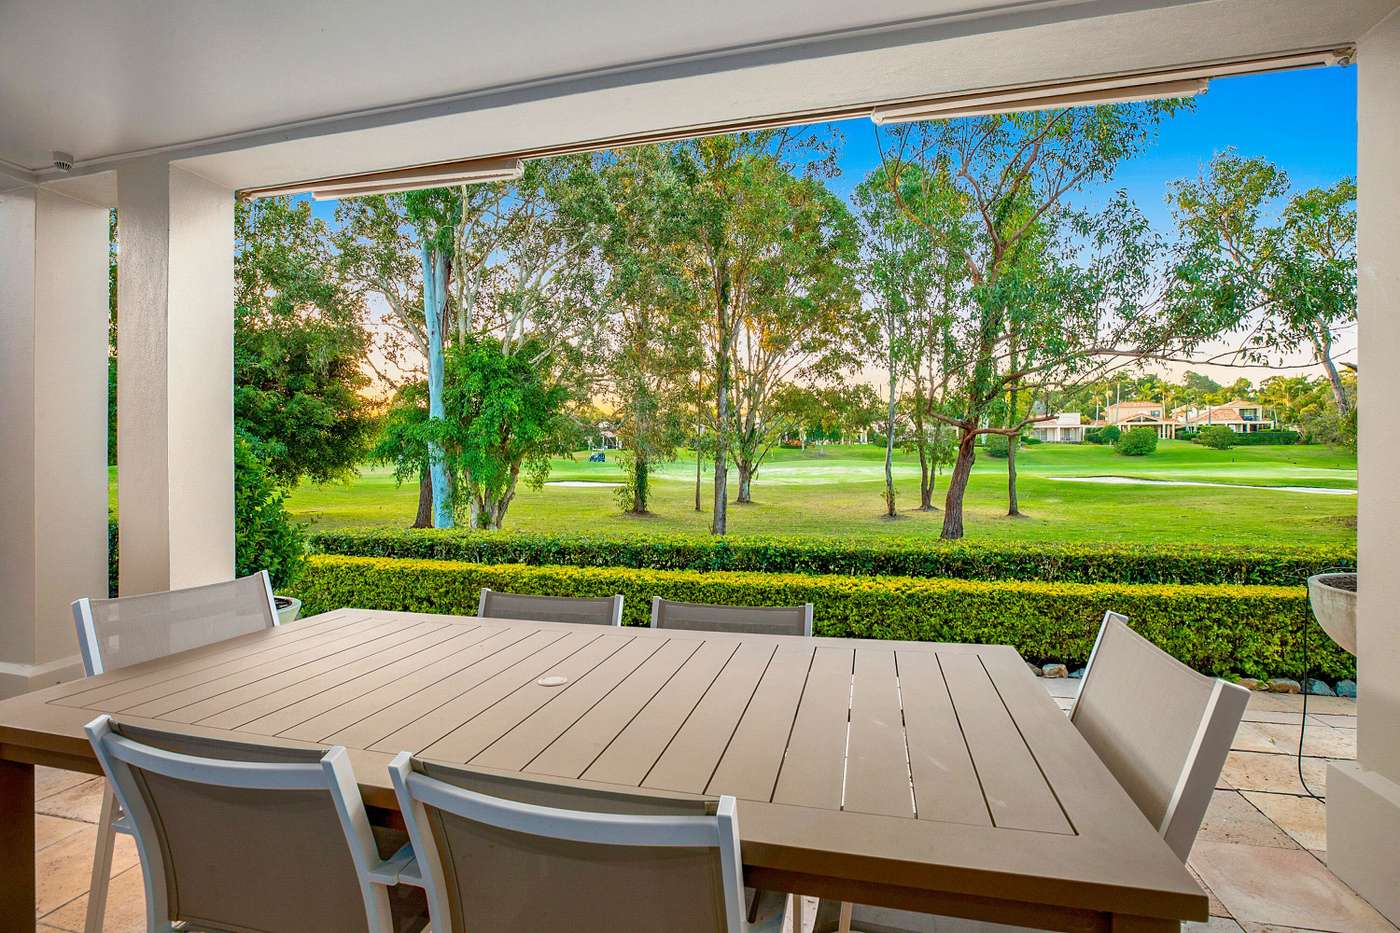 Main view of Homely villa listing, Unit 205/61 Noosa Springs Dr, Noosa Heads, QLD 4567